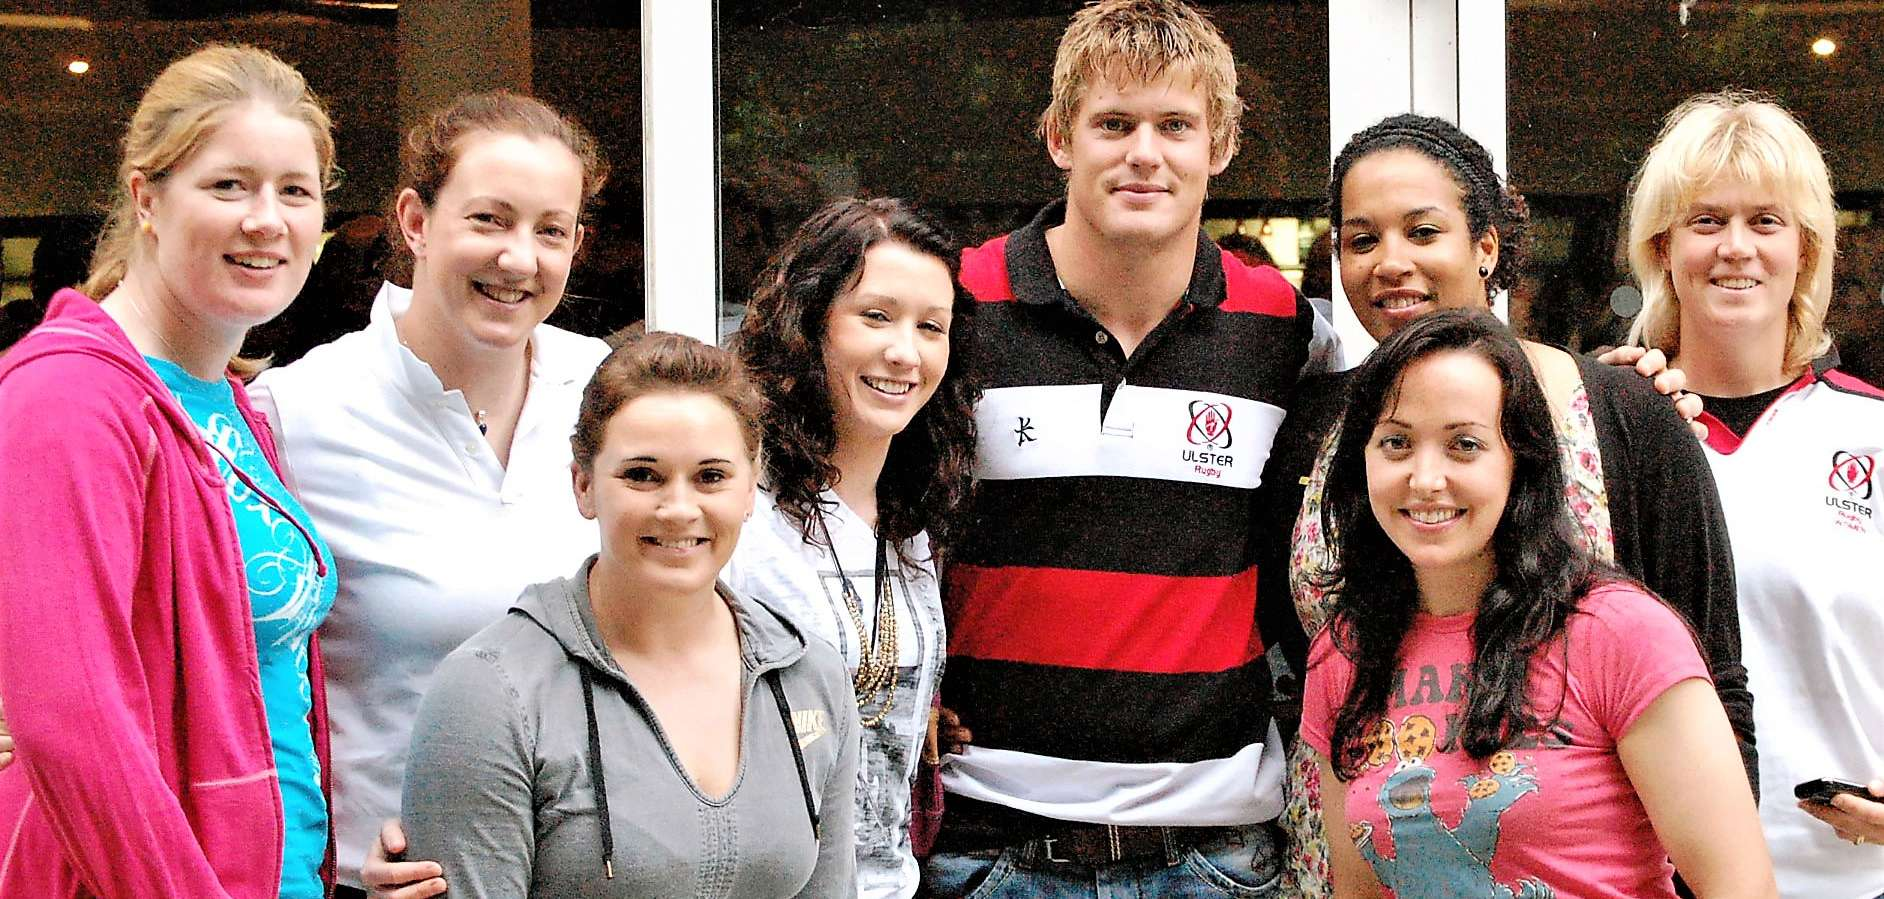 WRWC 2010: The Day after …